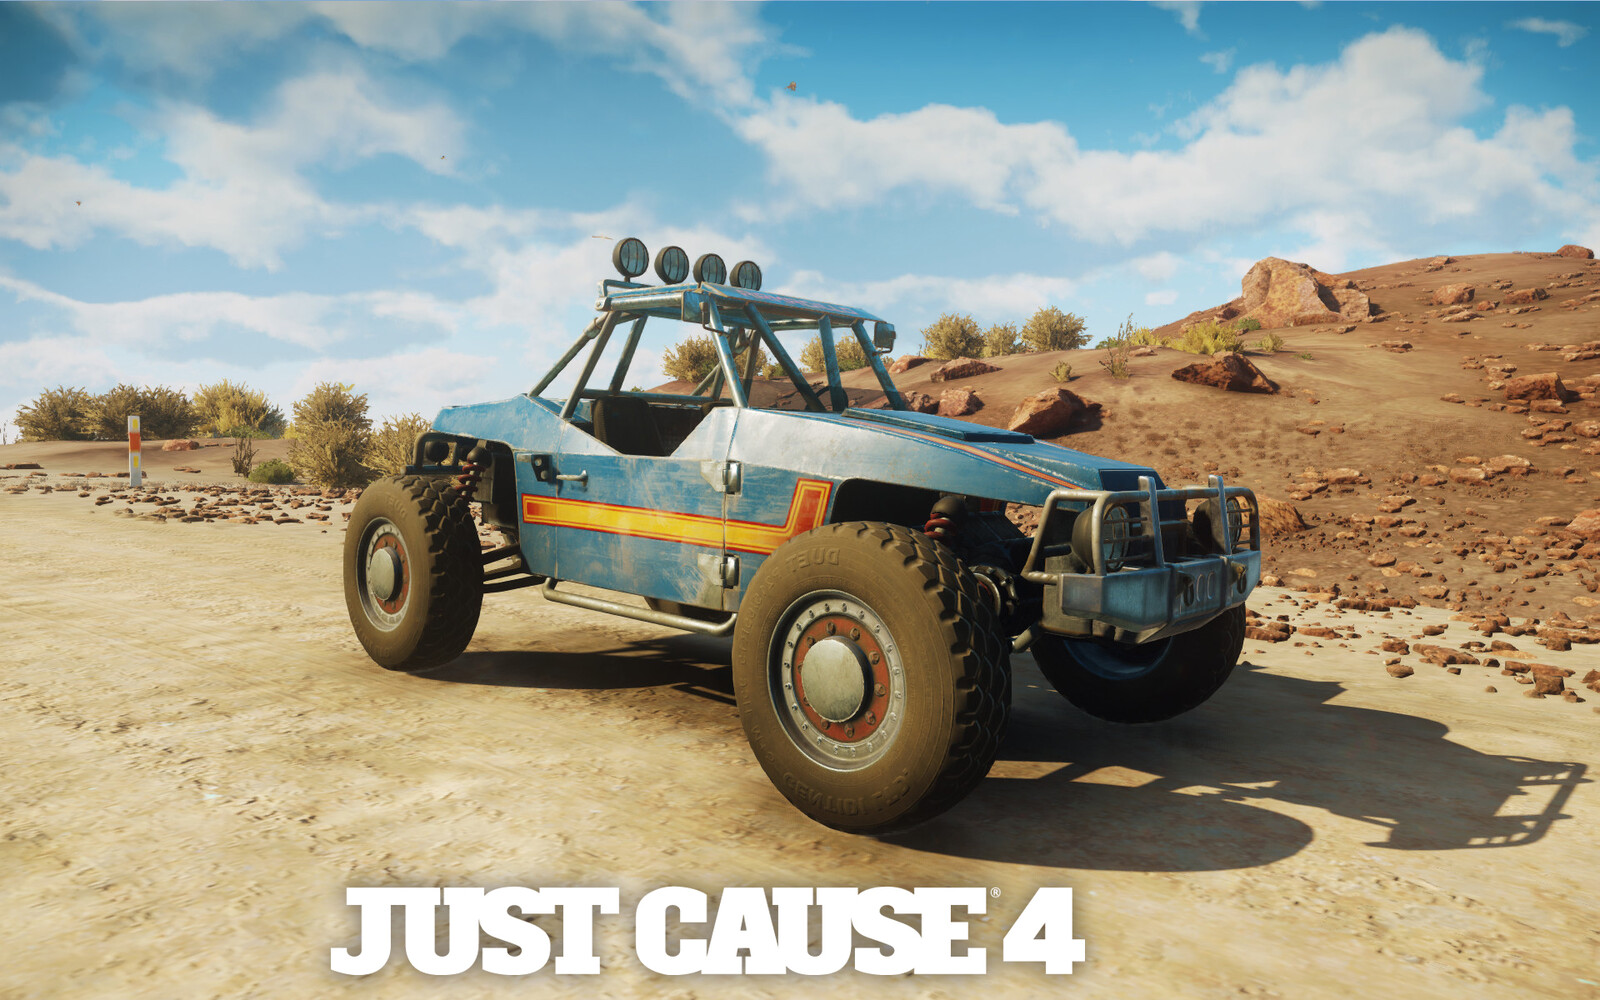 Just Cause 4 Vehicles